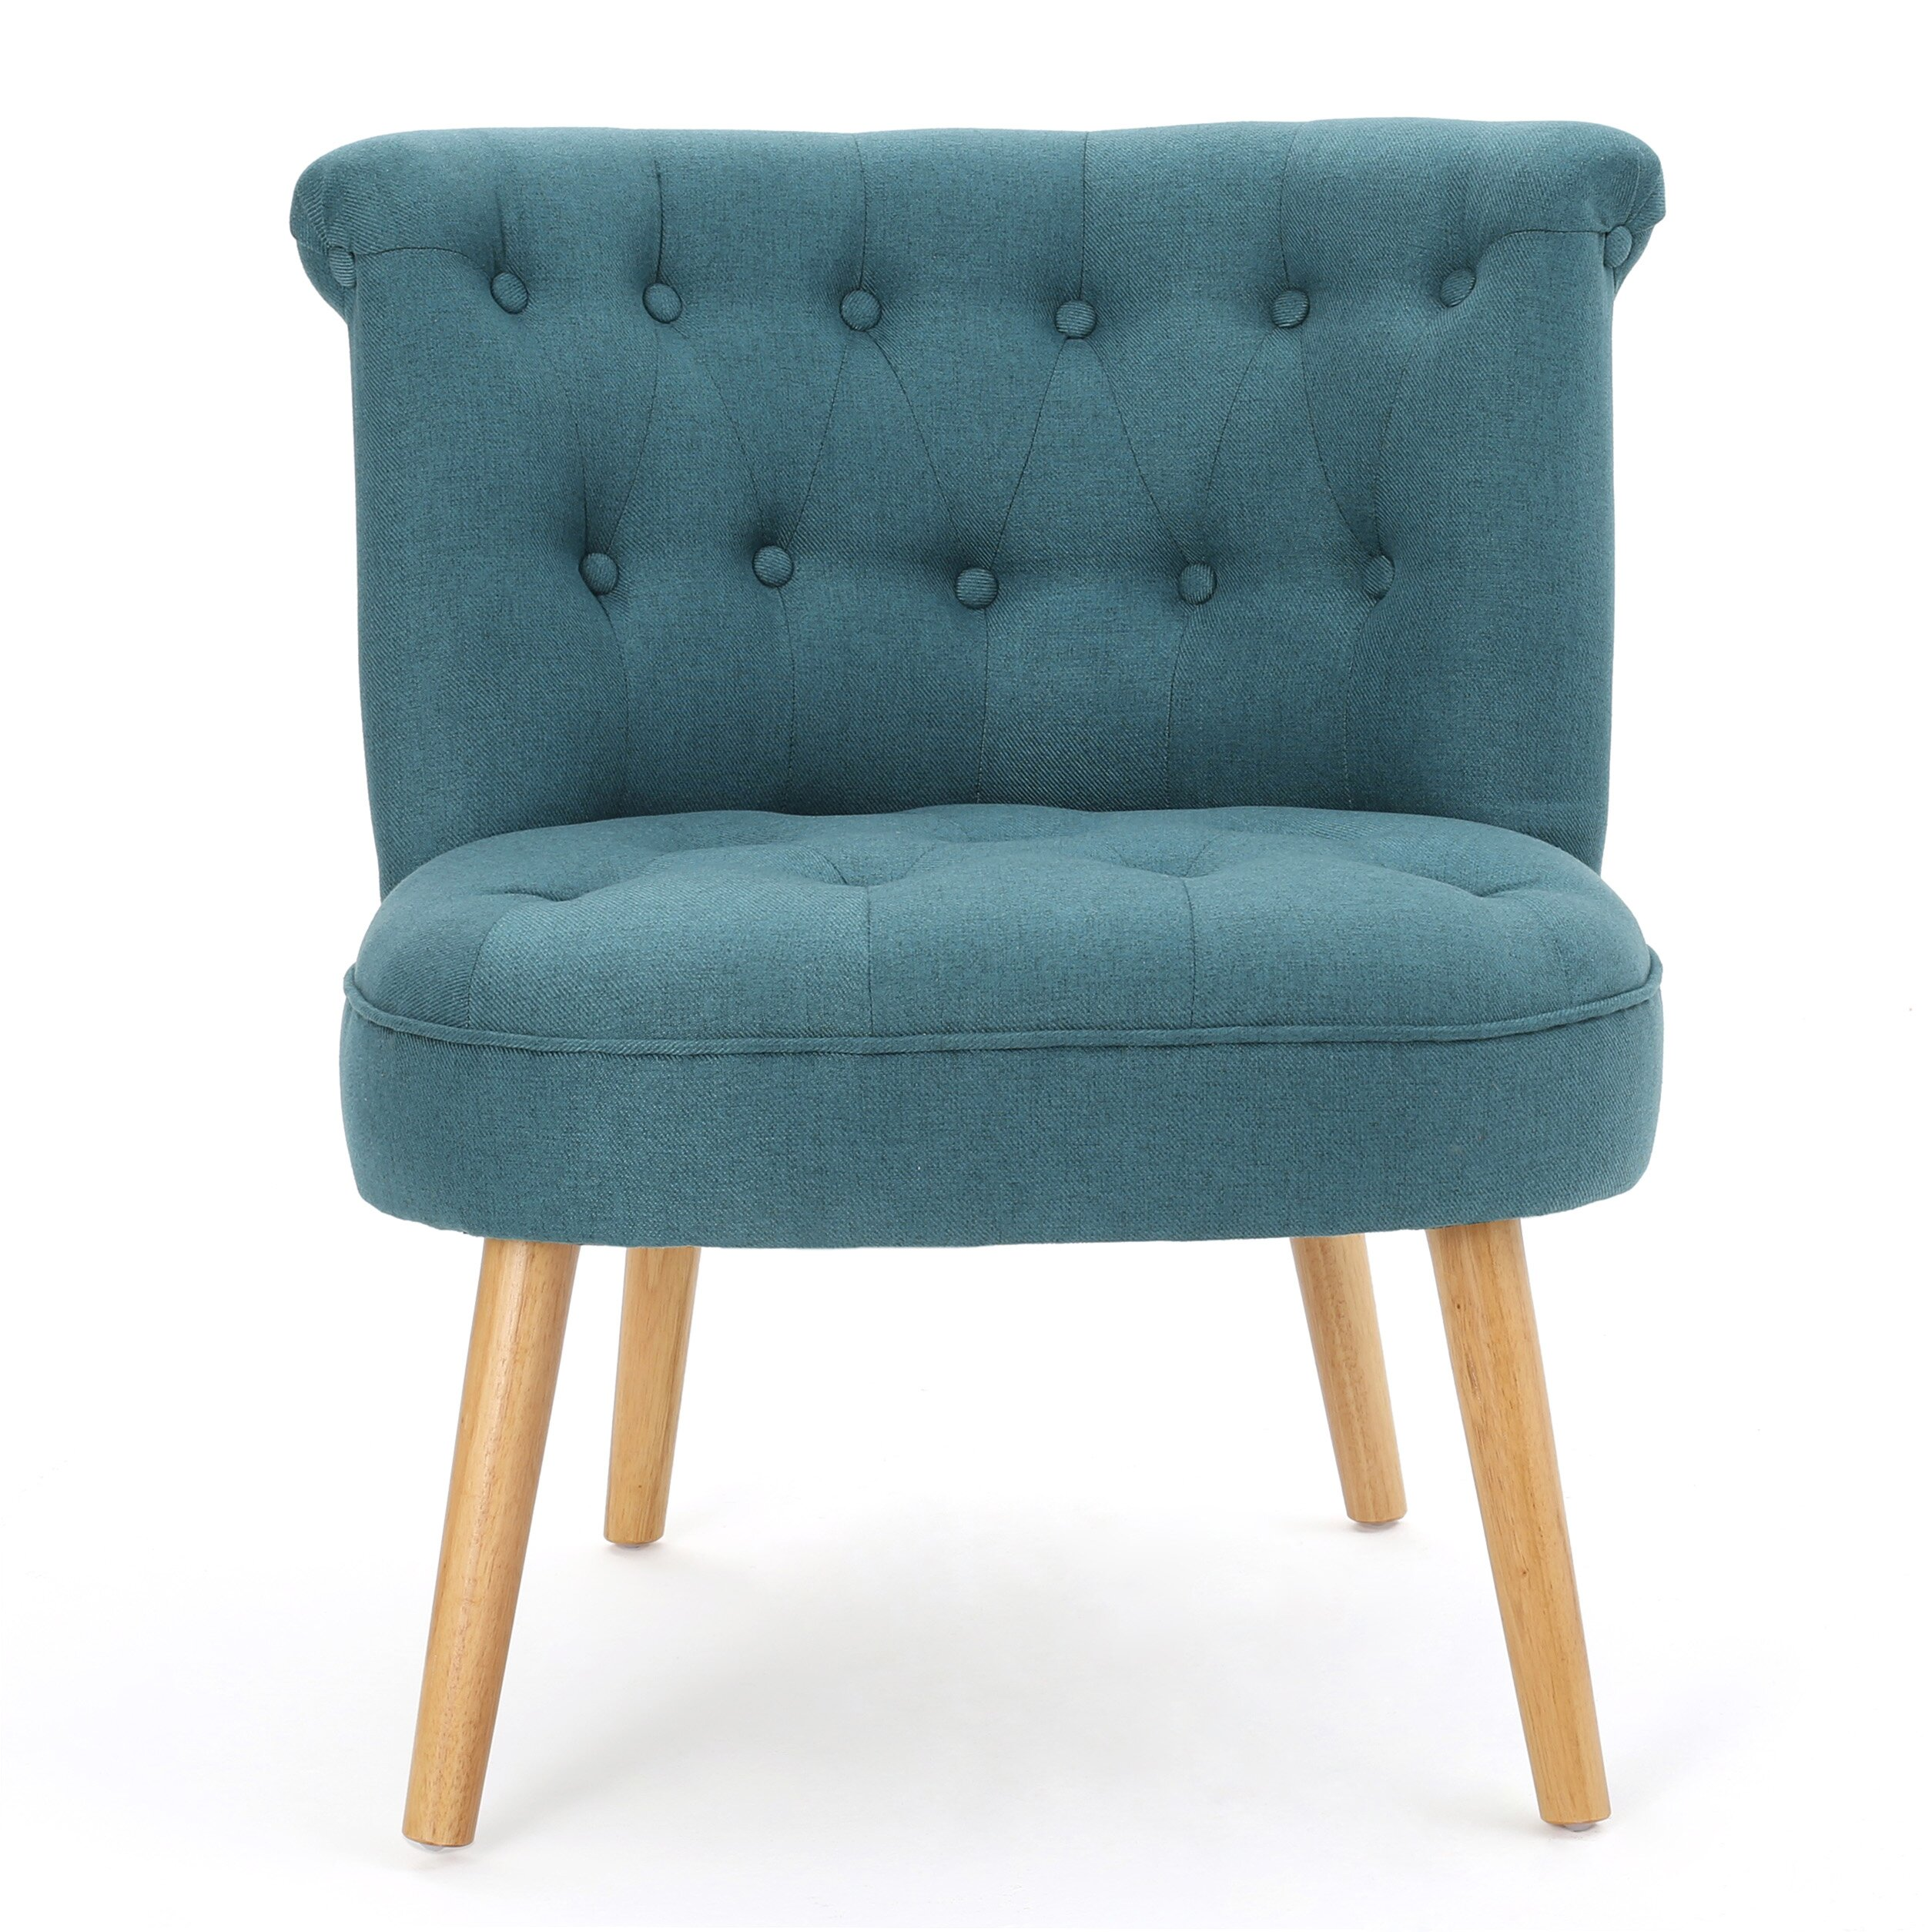 Nfusion Claudia Tufted Club Chair